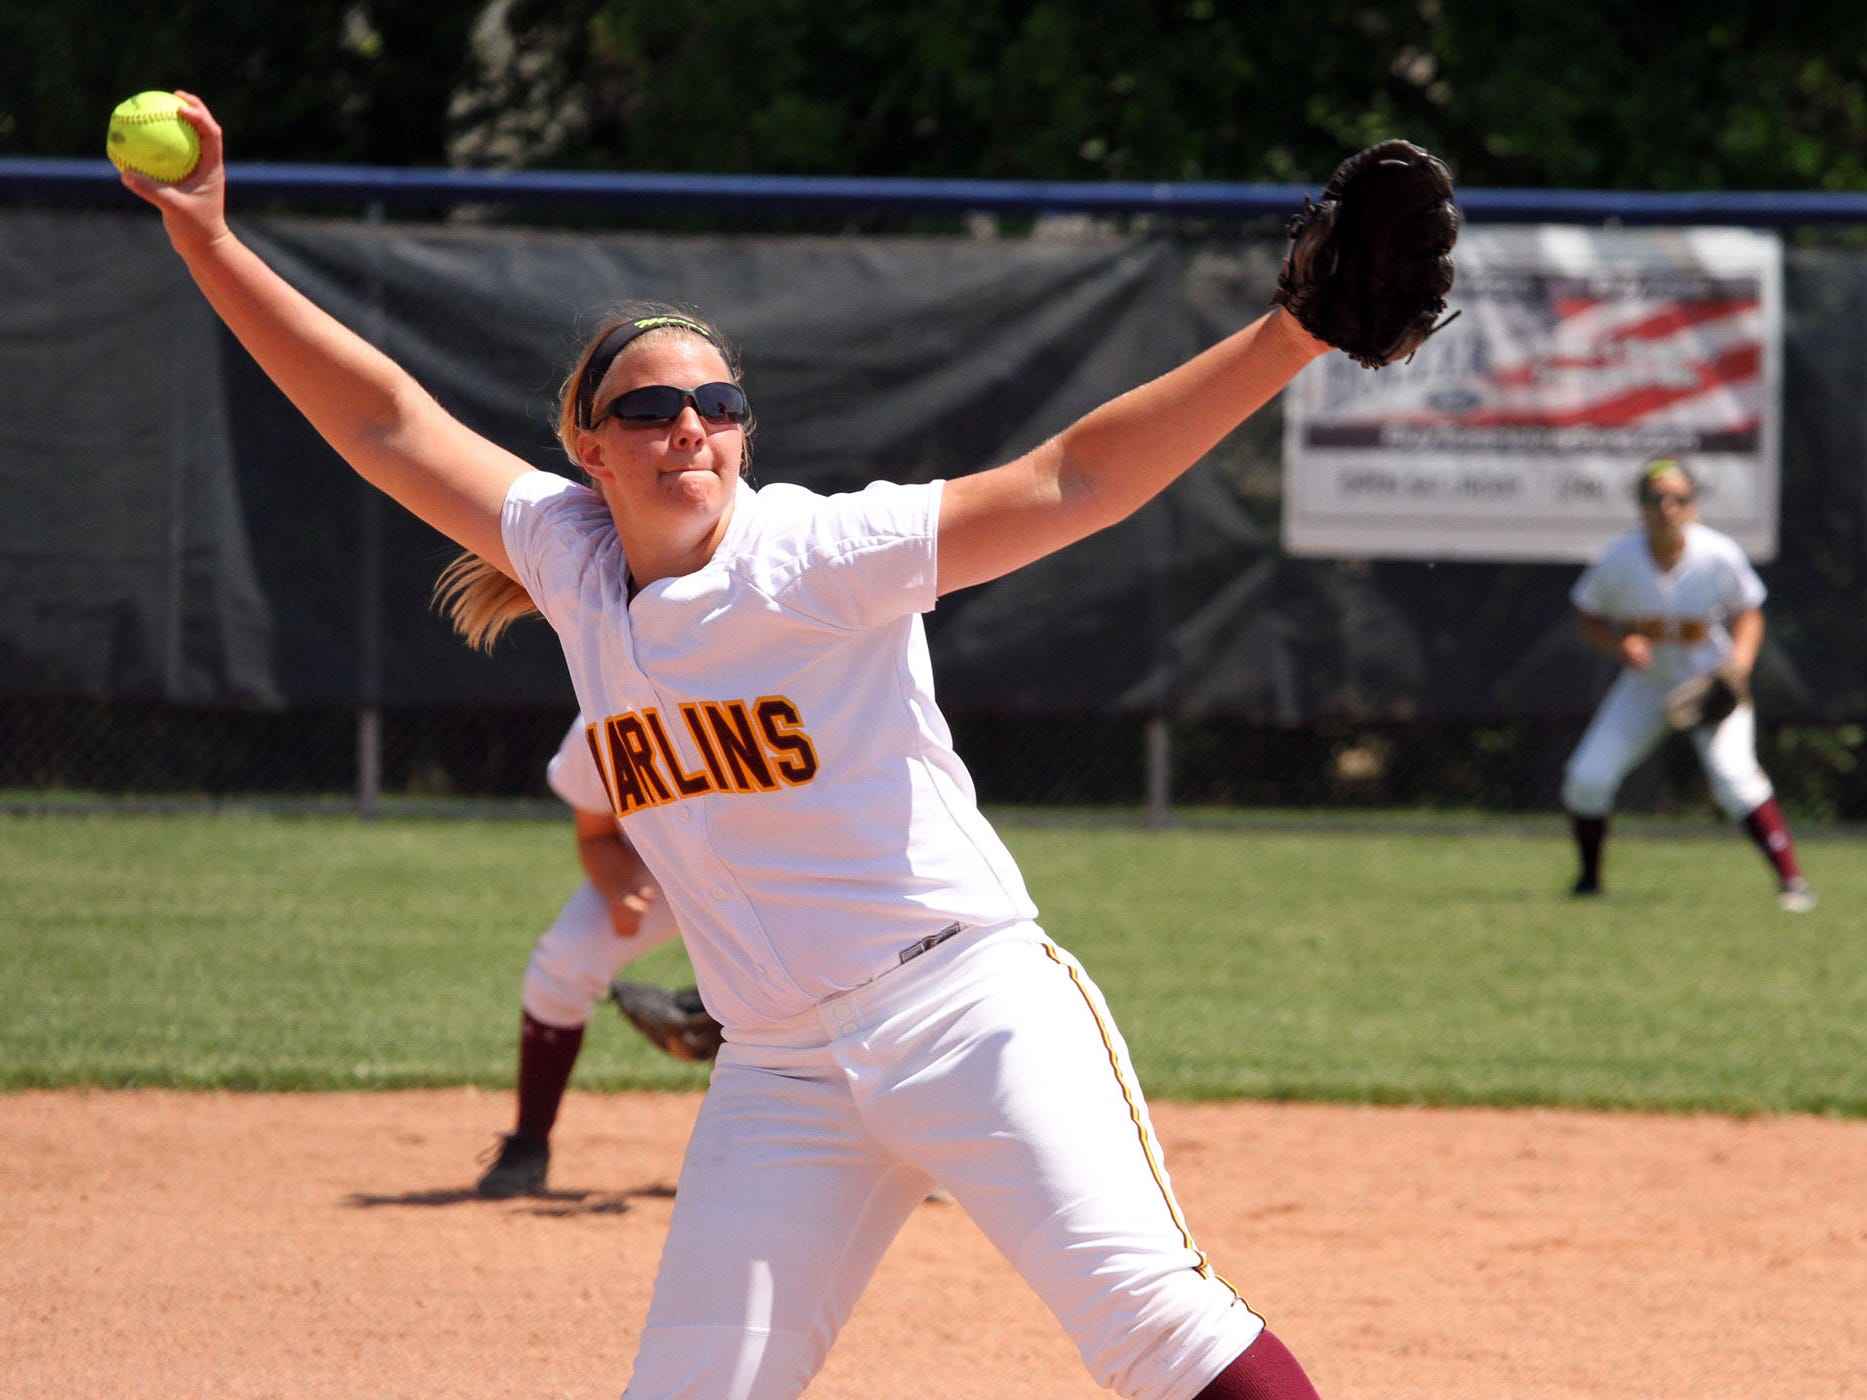 Junior Abby Krzywiecki made some big plays as a pitcher and hitter to help Mercy win the Jack Falvo Memorial Tournament.